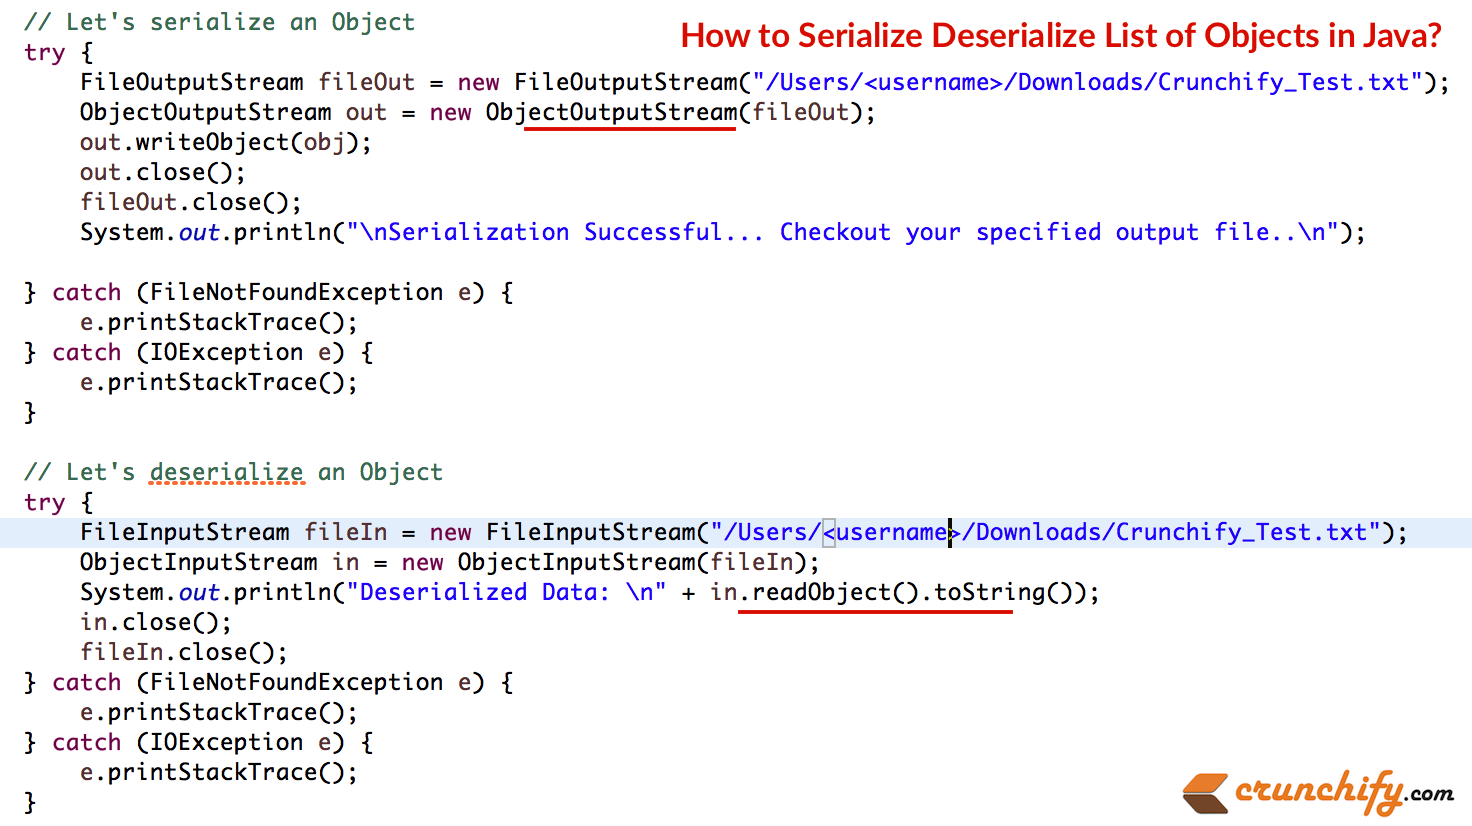 how-to-serialize-deserialize-list-of-objects-in-java